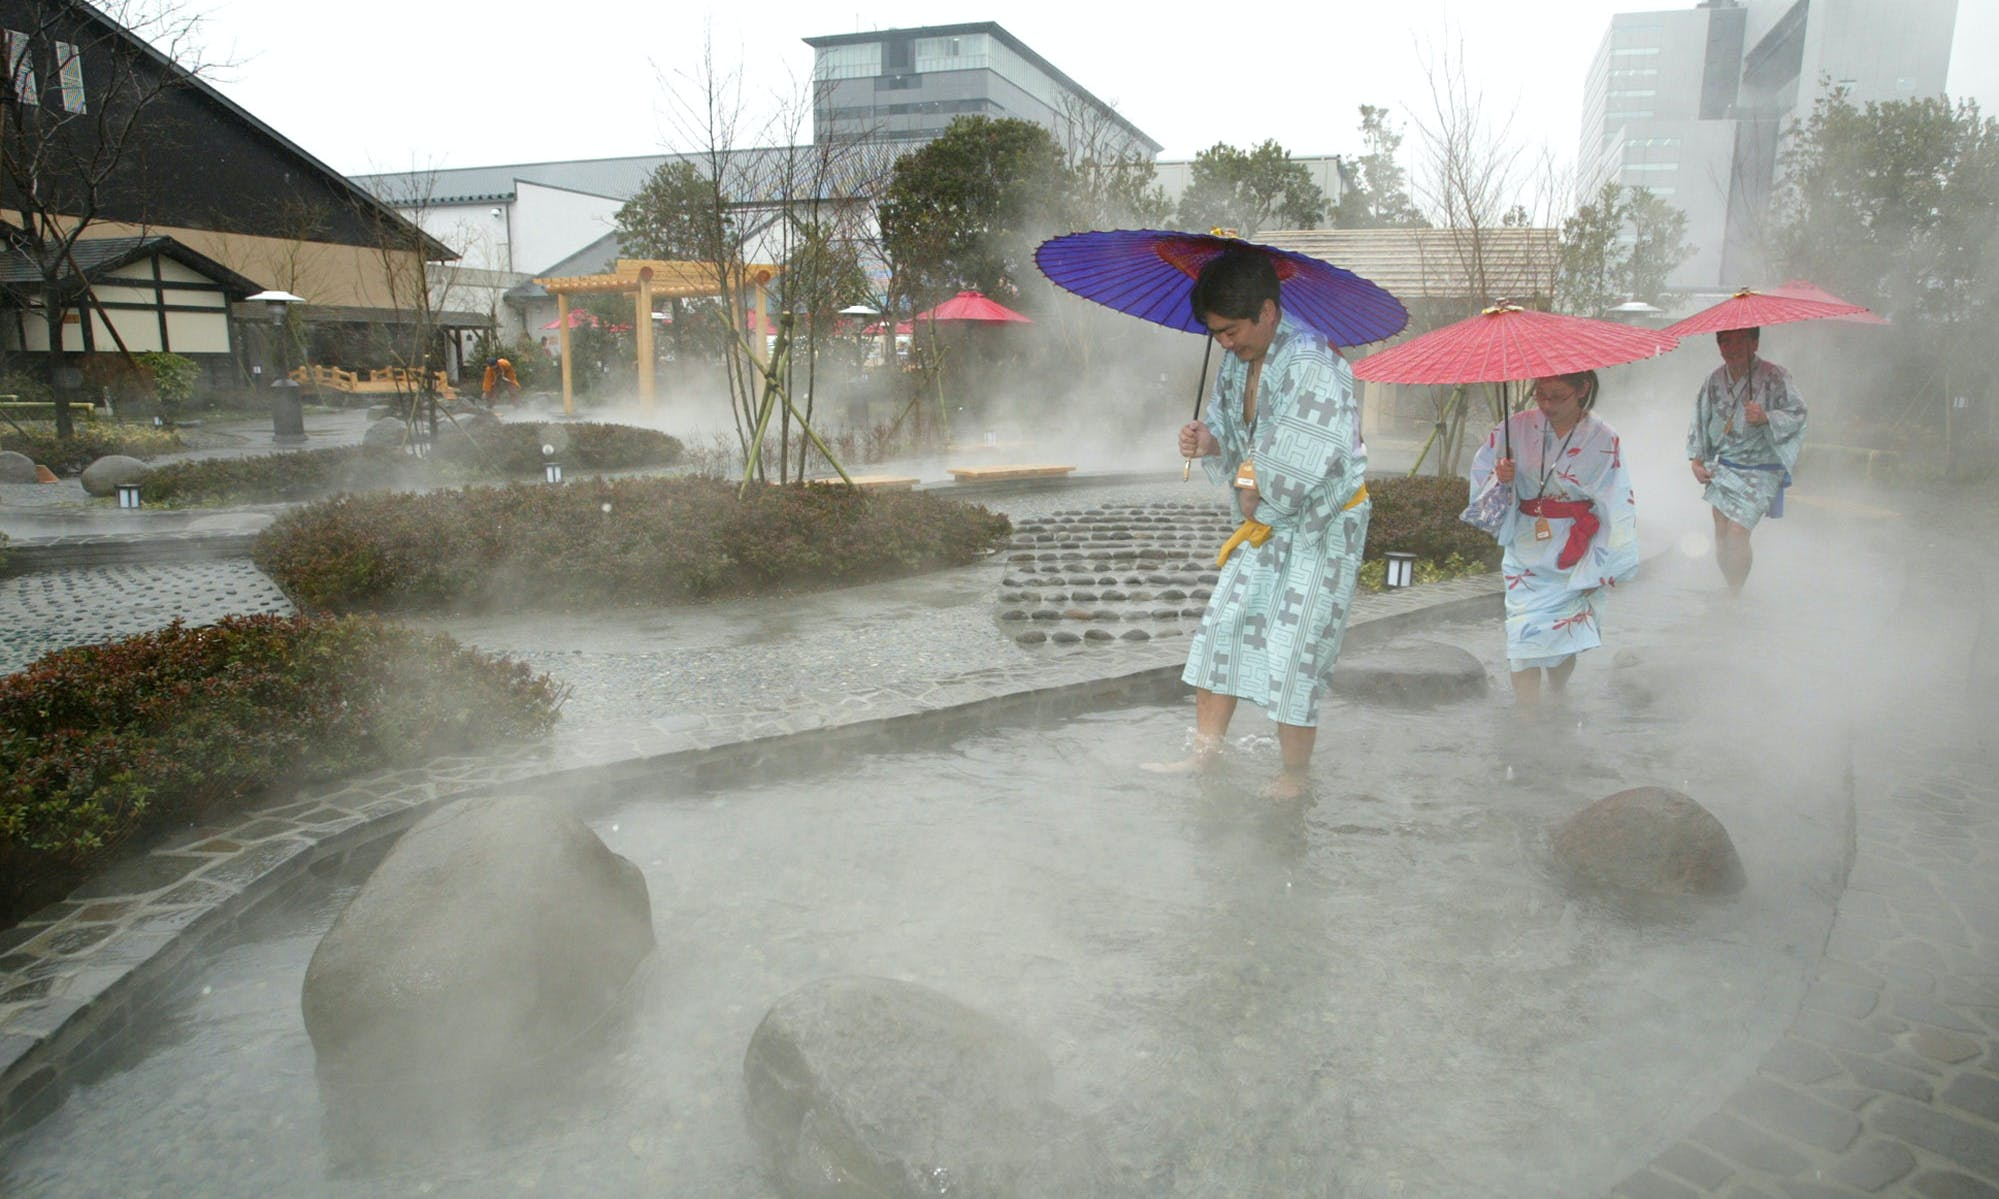 Japan's Hot Springs Open Up to LGBT Community